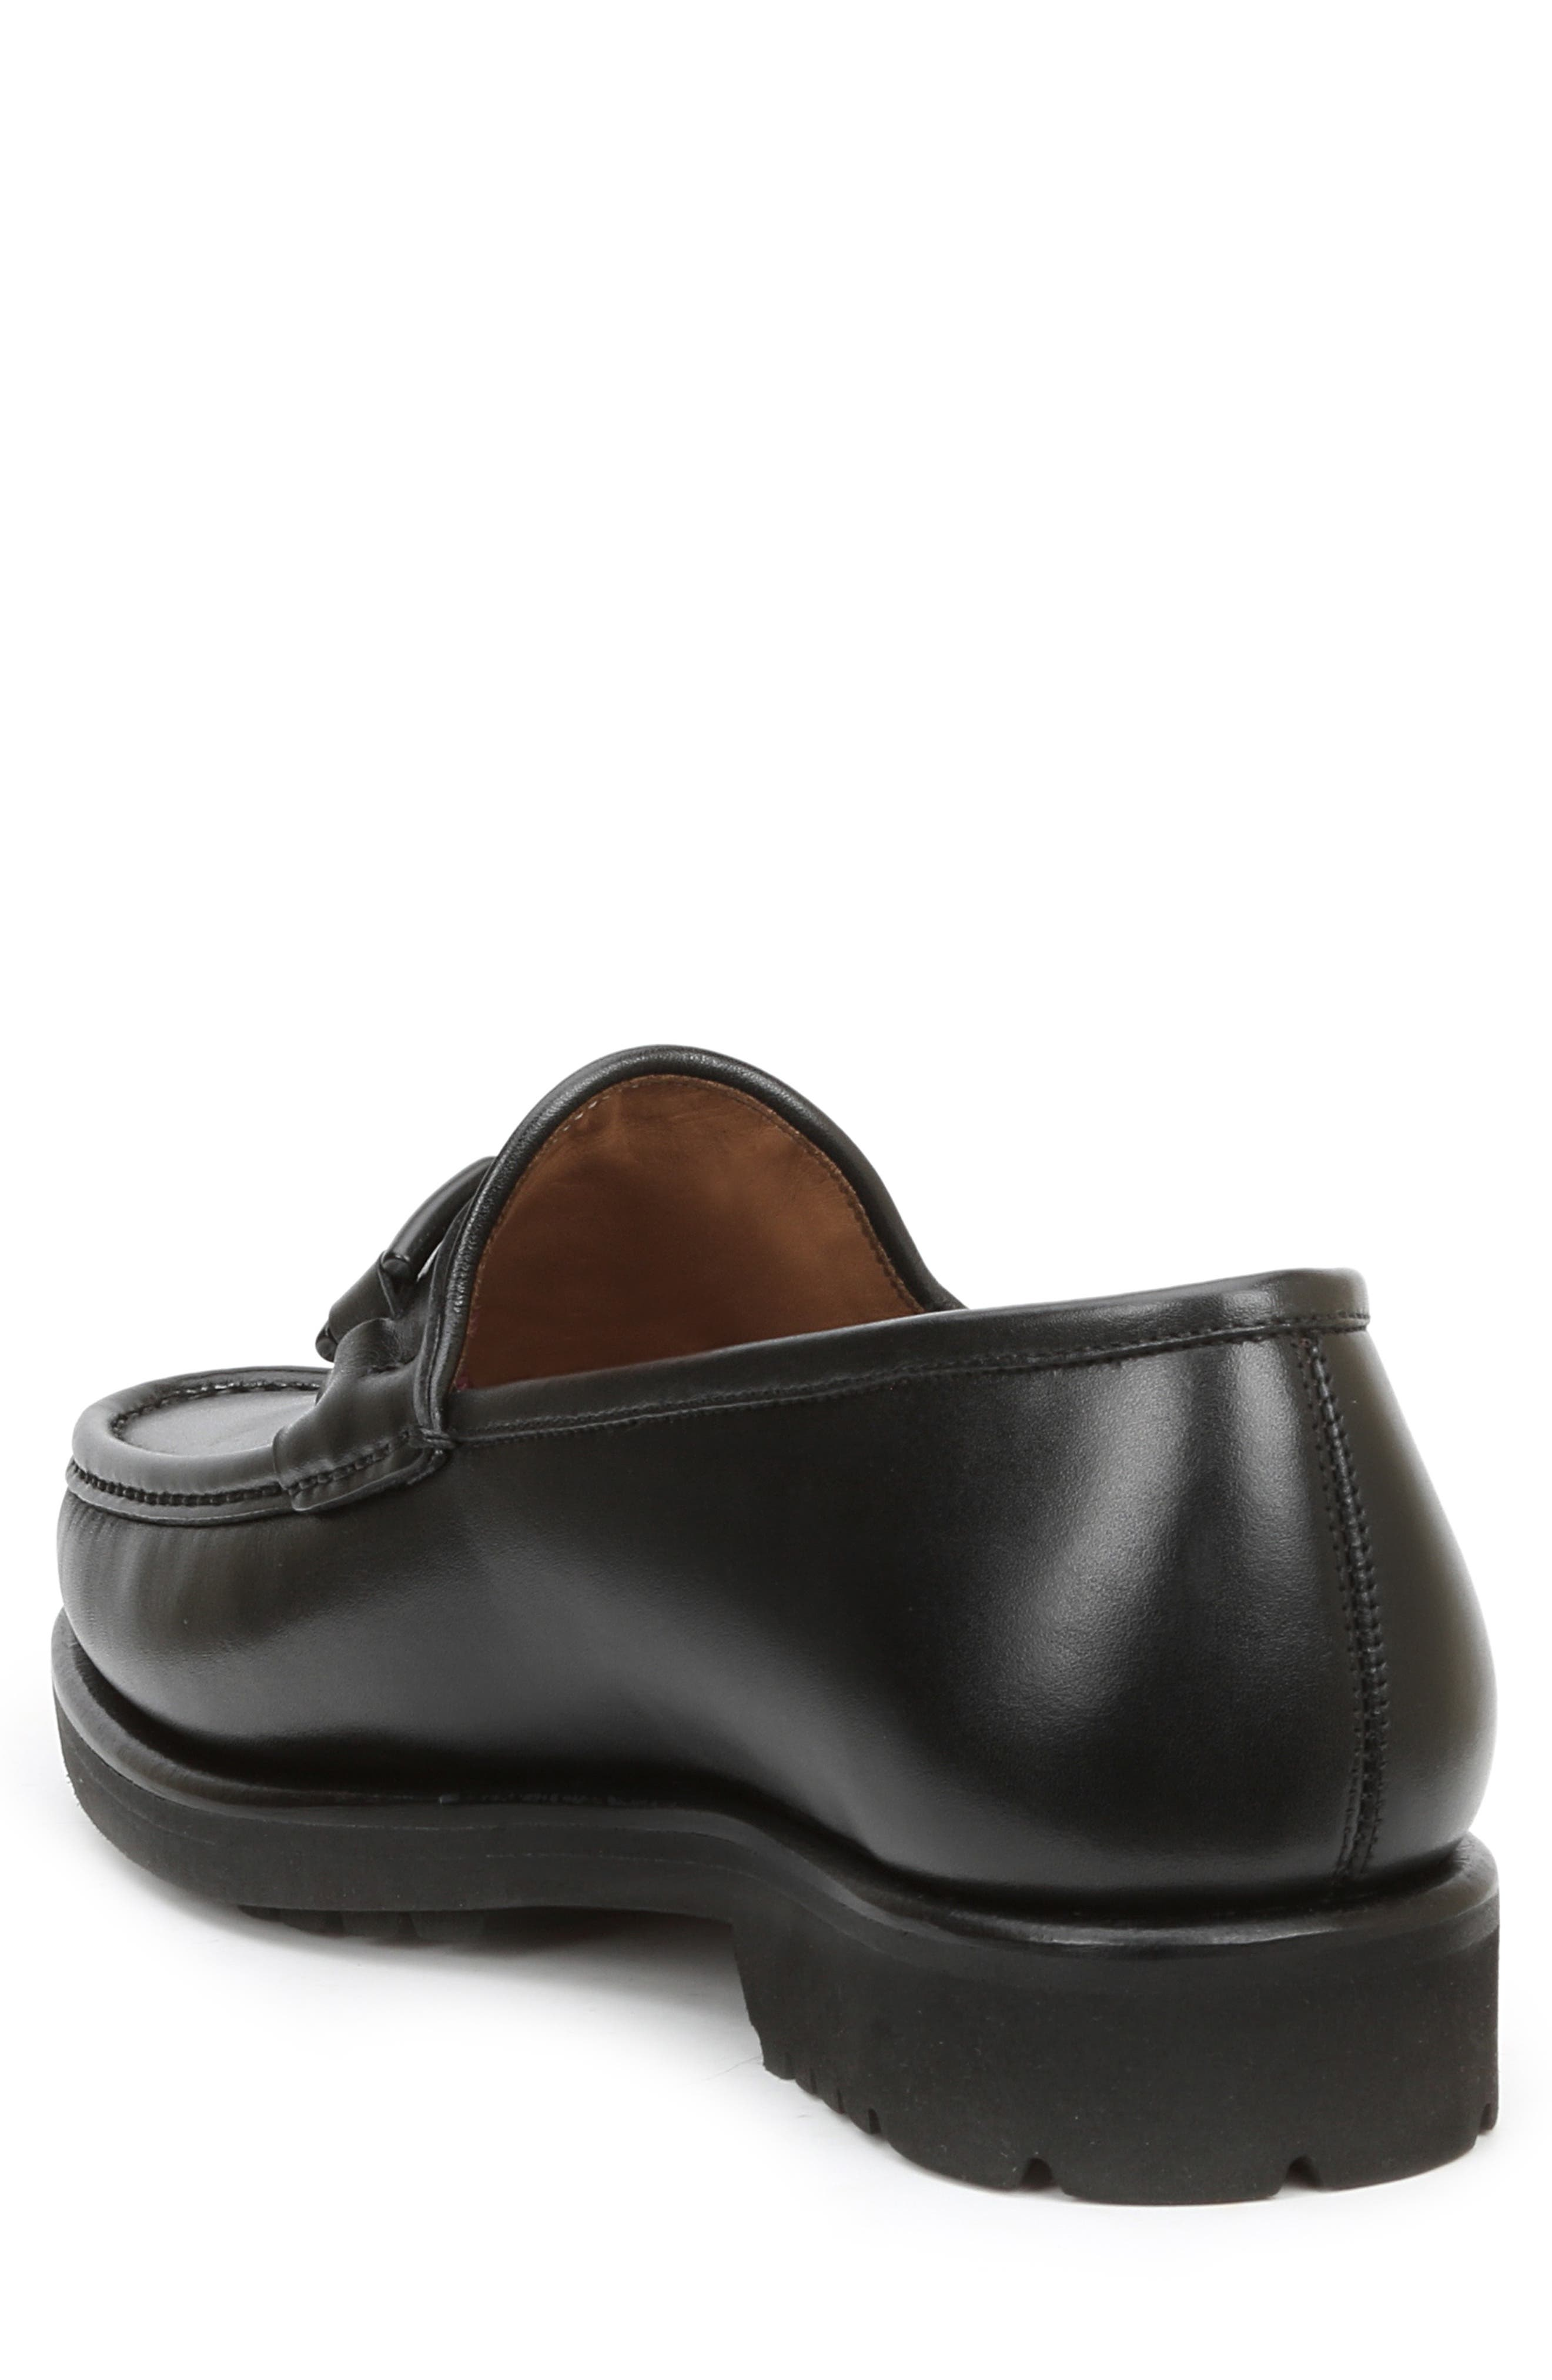 Falcone Lugged Bit Loafer,                             Alternate thumbnail 2, color,                             BLACK